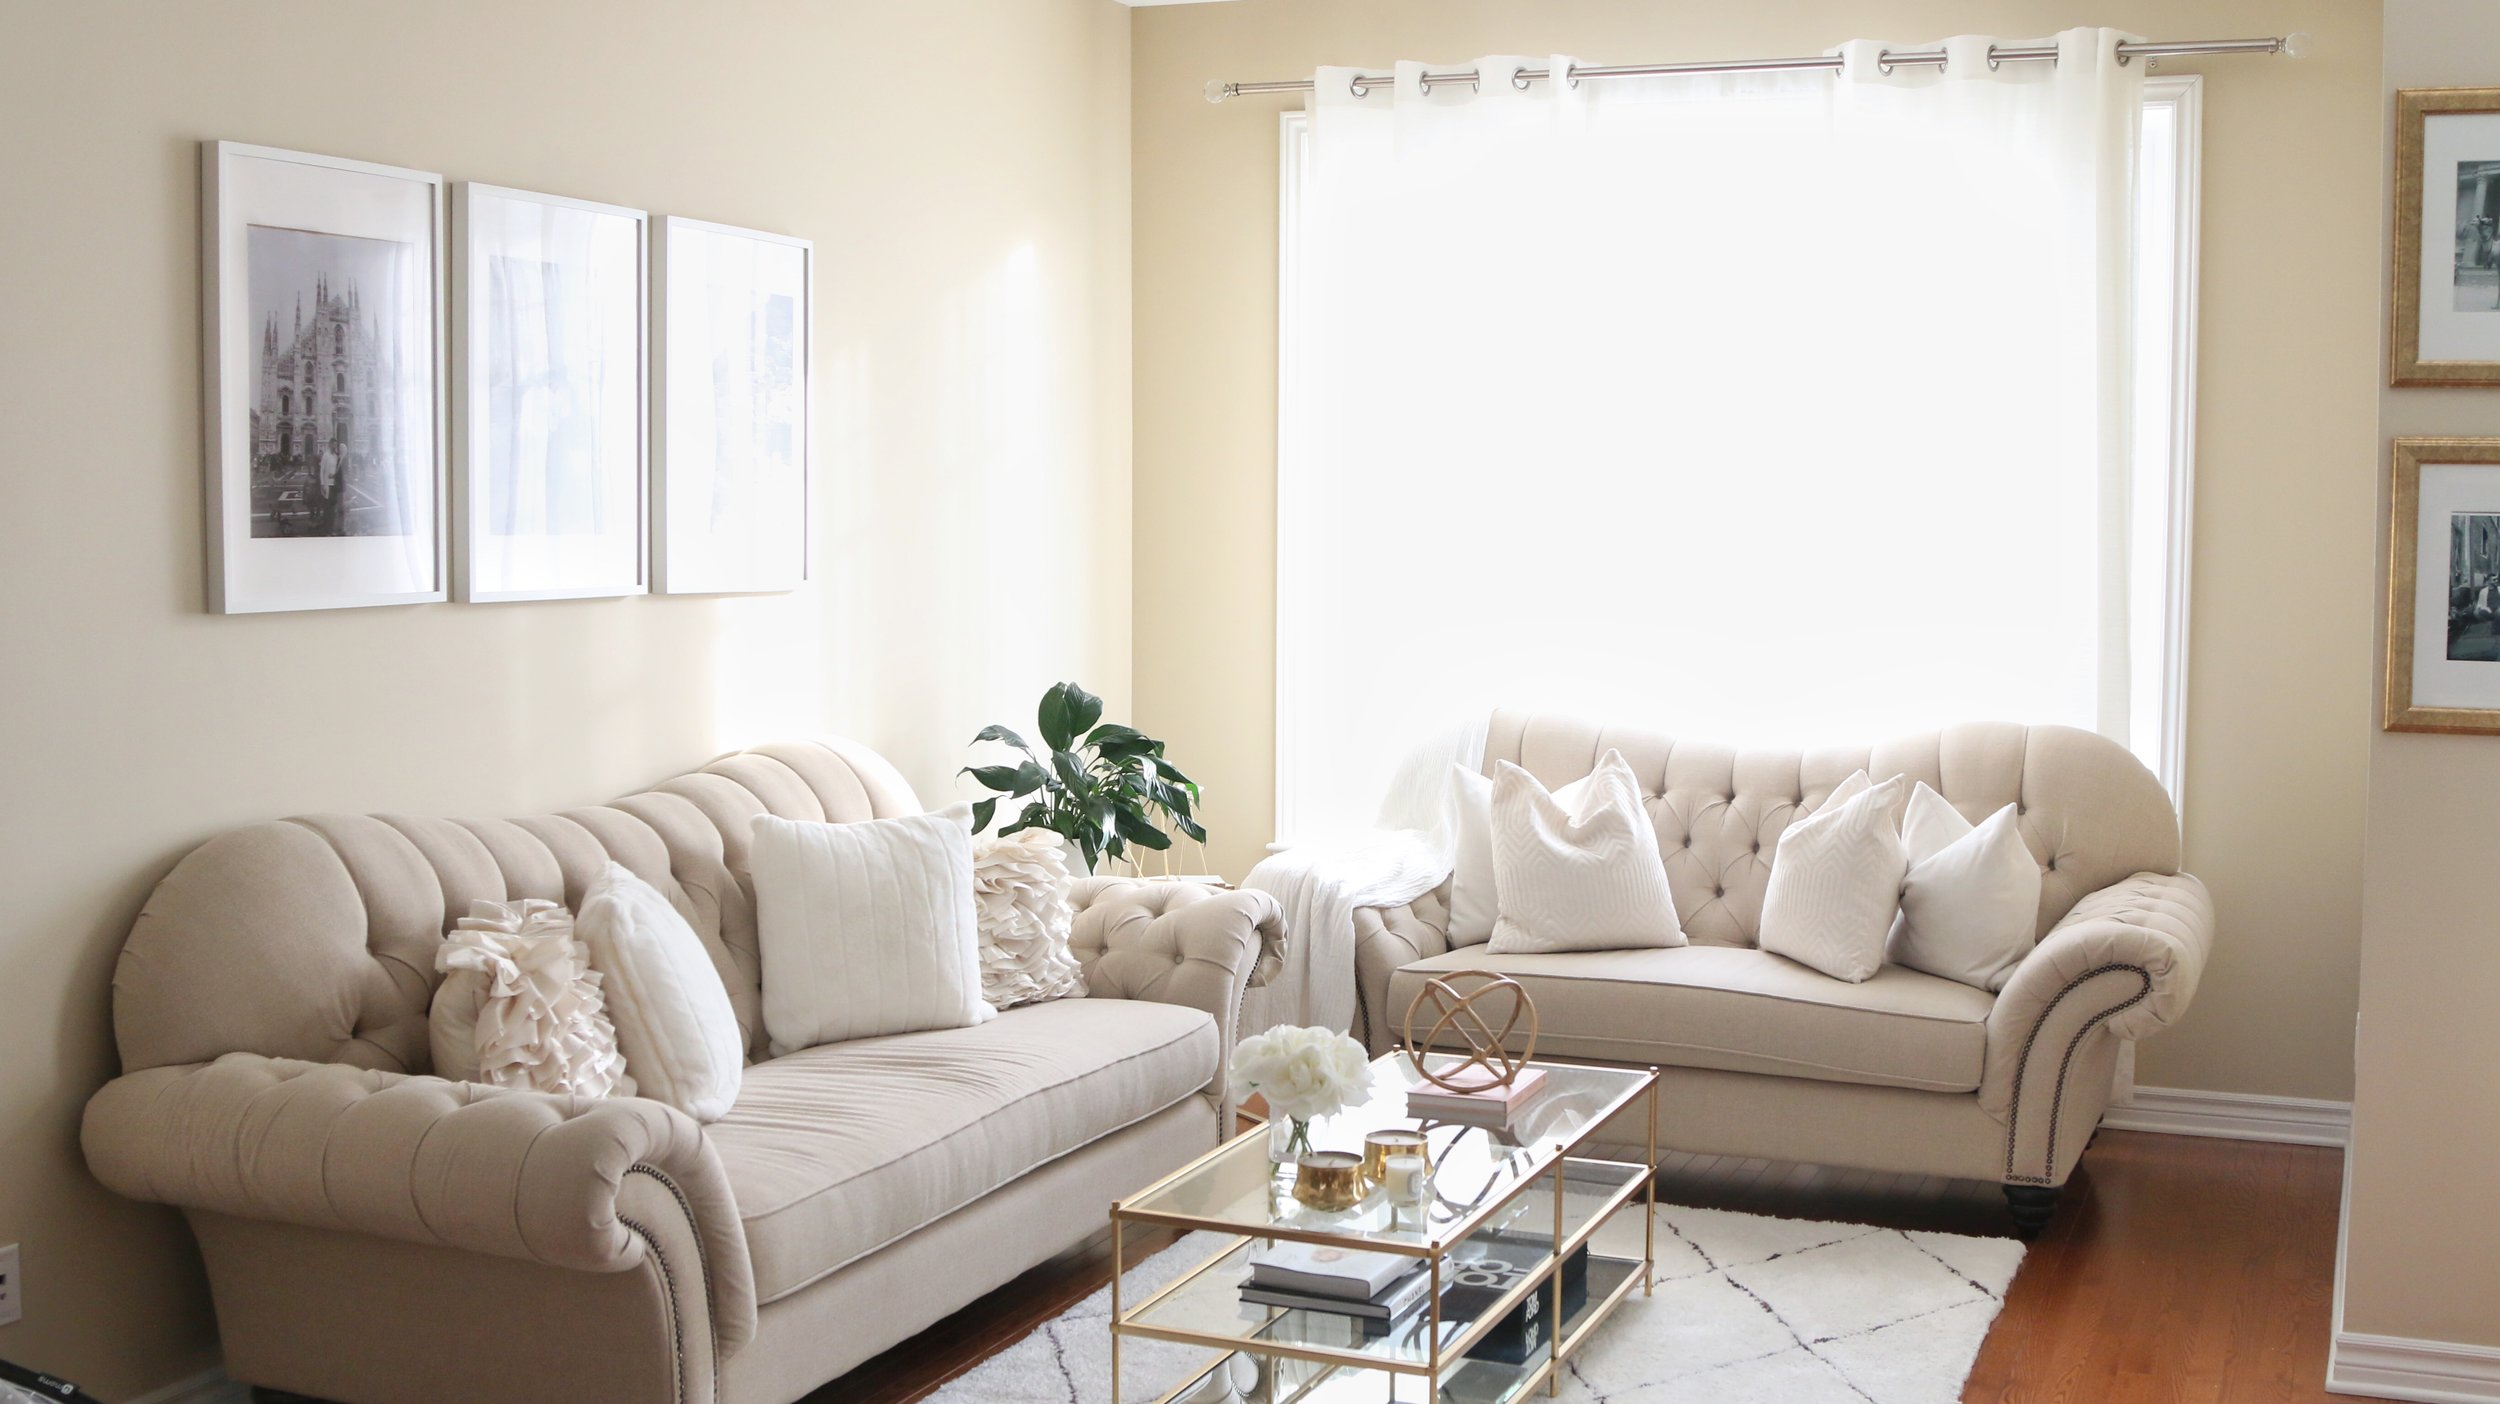 White Beige and Gold Living Room Space.jpg